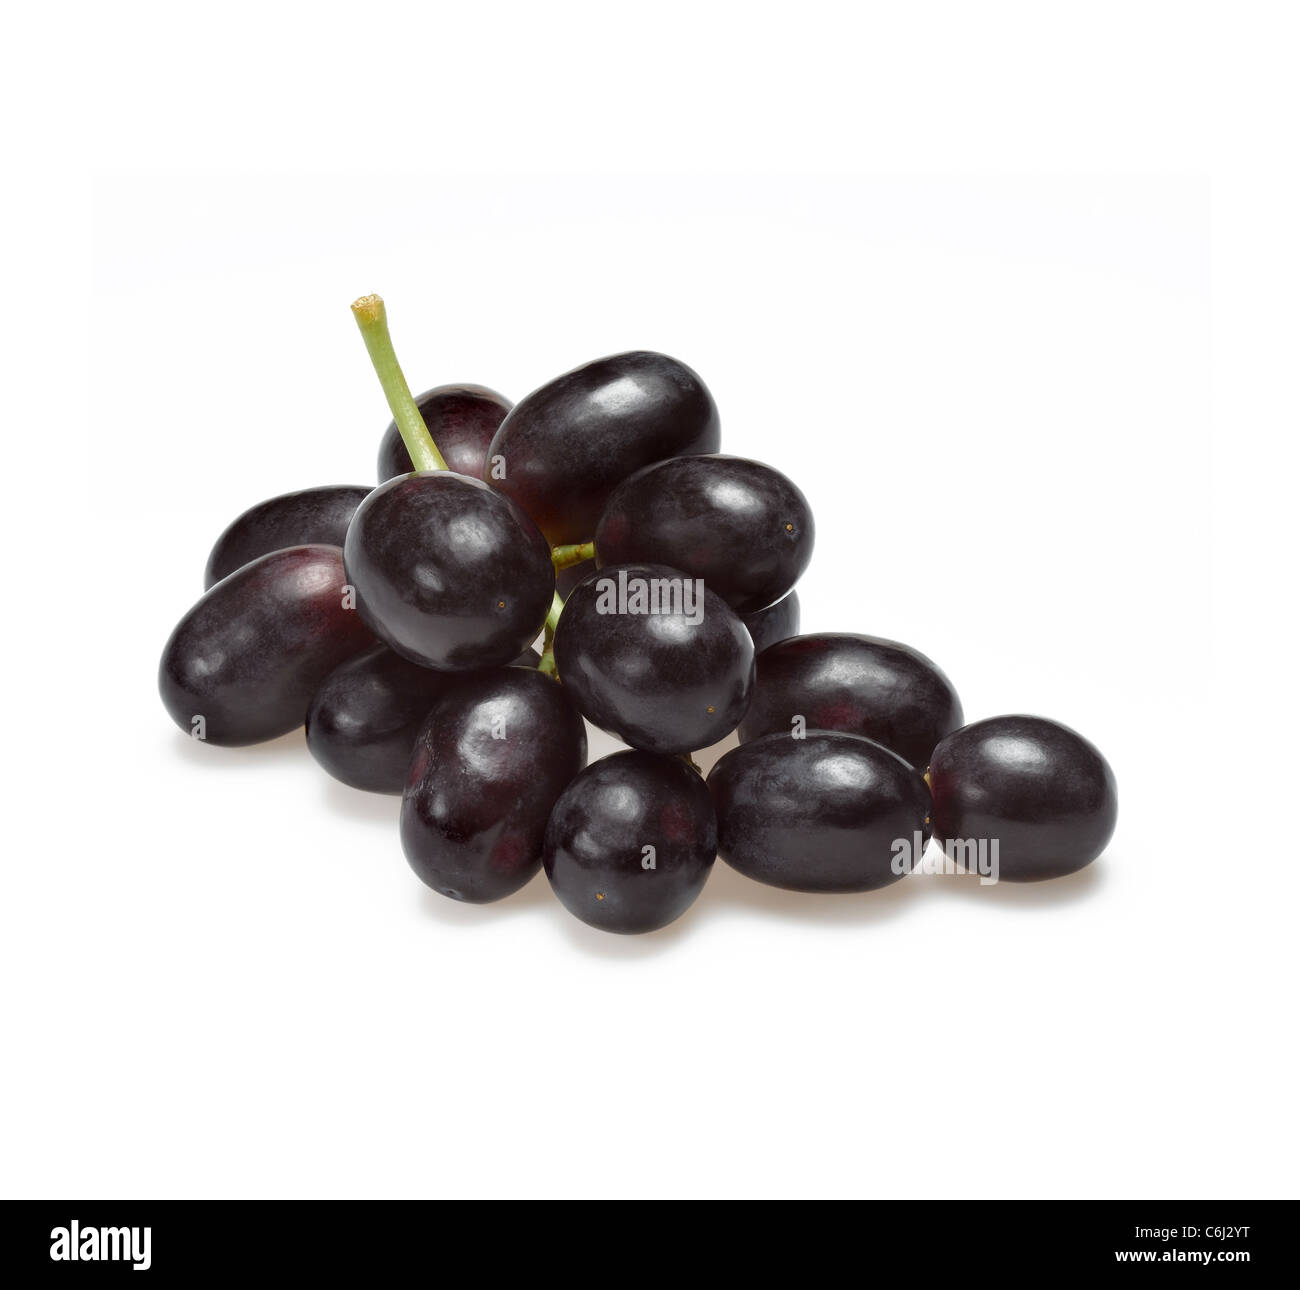 black grapes - Stock Image